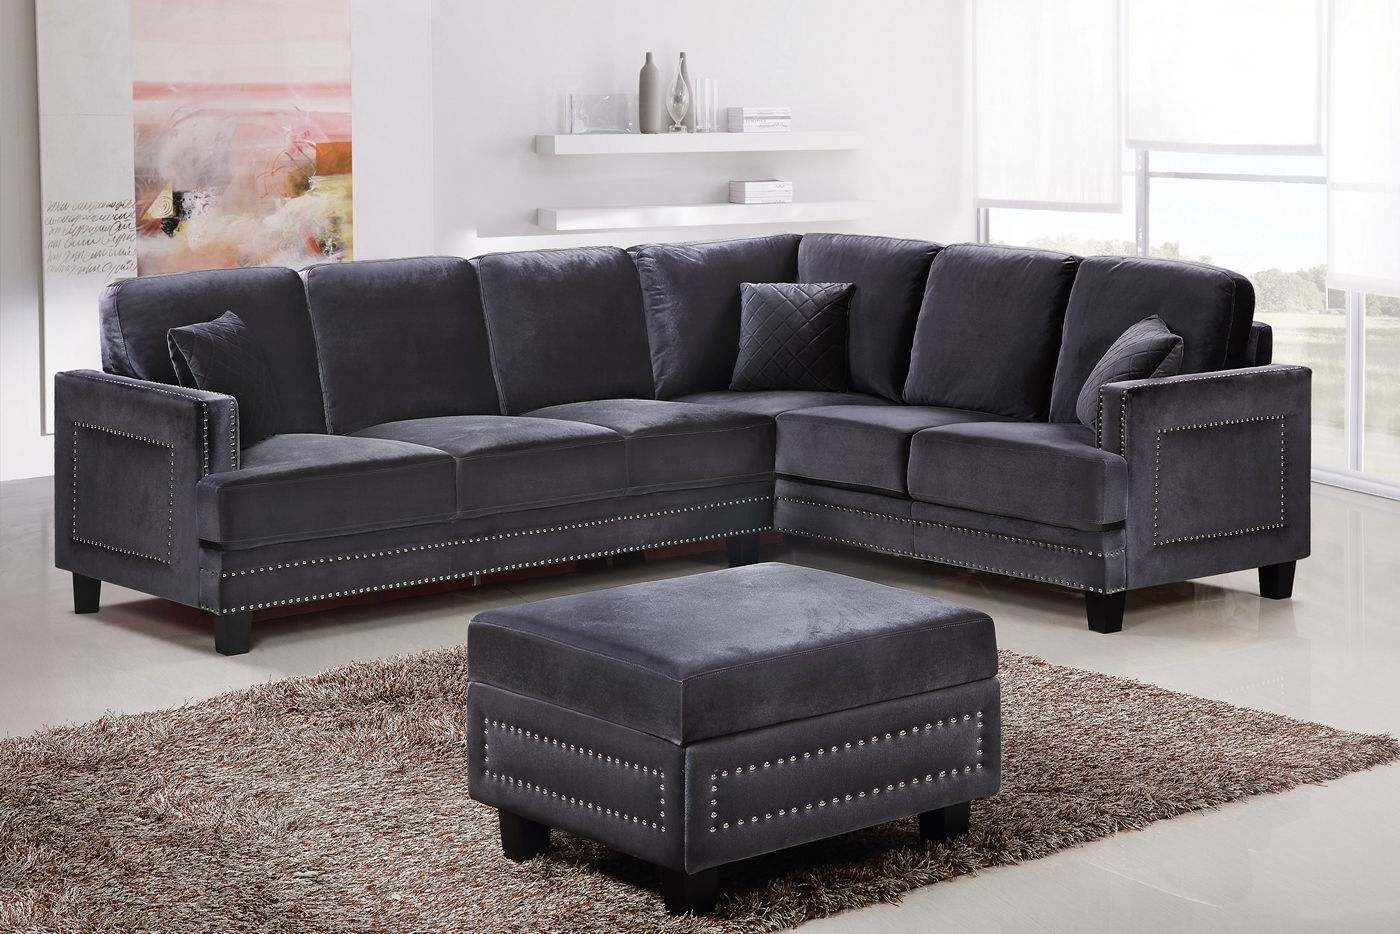 Braylee Modern Grey Velvet Sectional Sofa With Nailhead Trim Regarding Well Known Molnar Upholstered Sectional Sofas Blue/Gray (View 11 of 25)